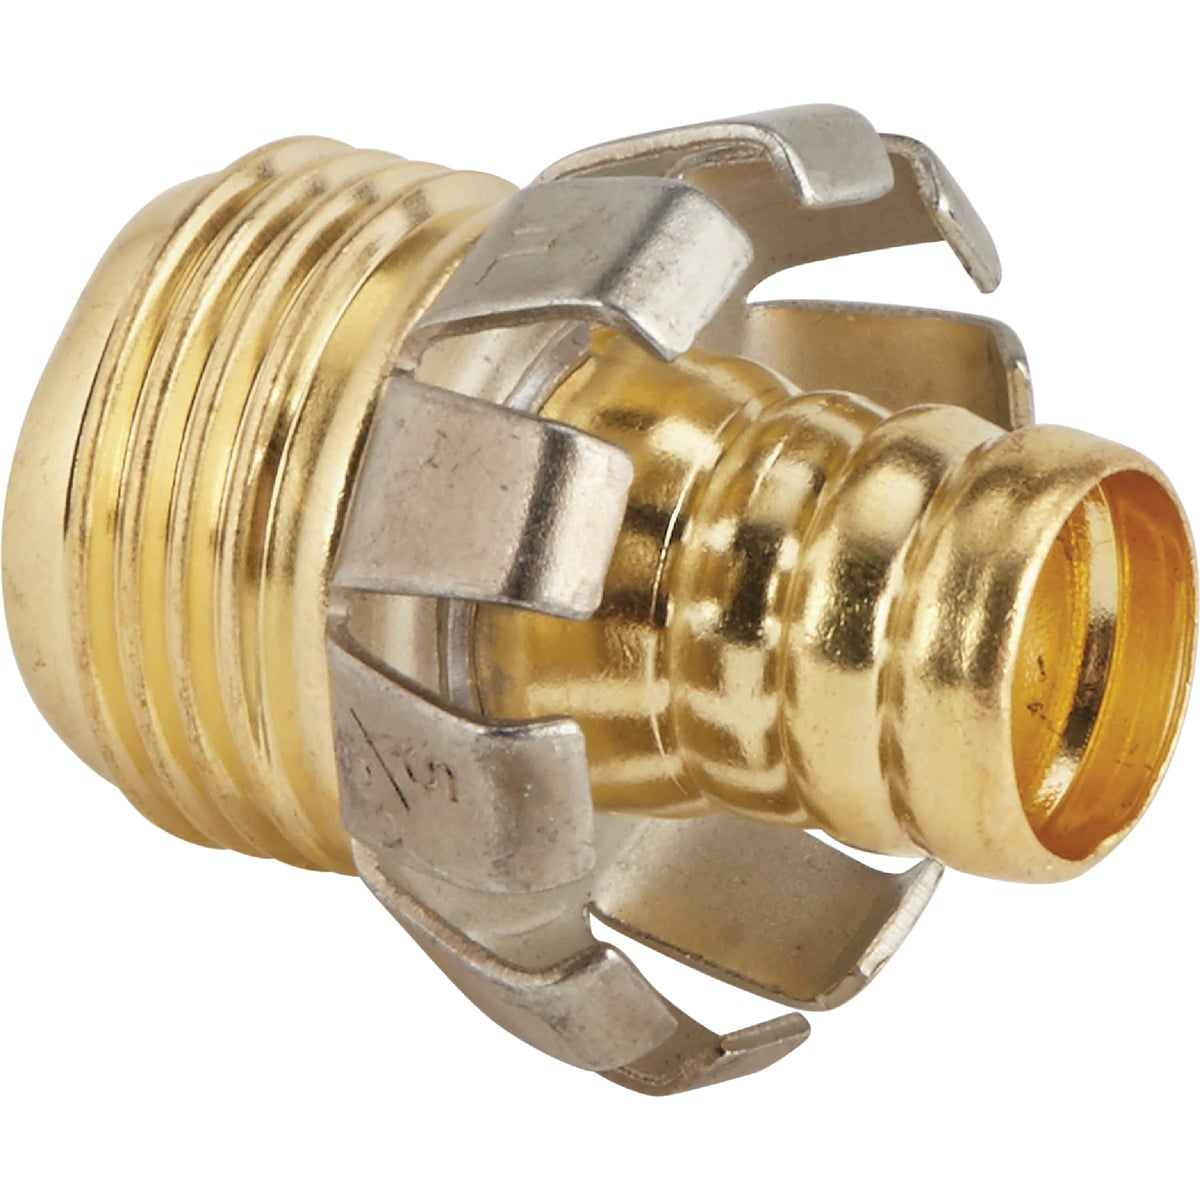 "5/8"" MALE BRASS HOSE END - DIBC58M by Bosch G W Gs"